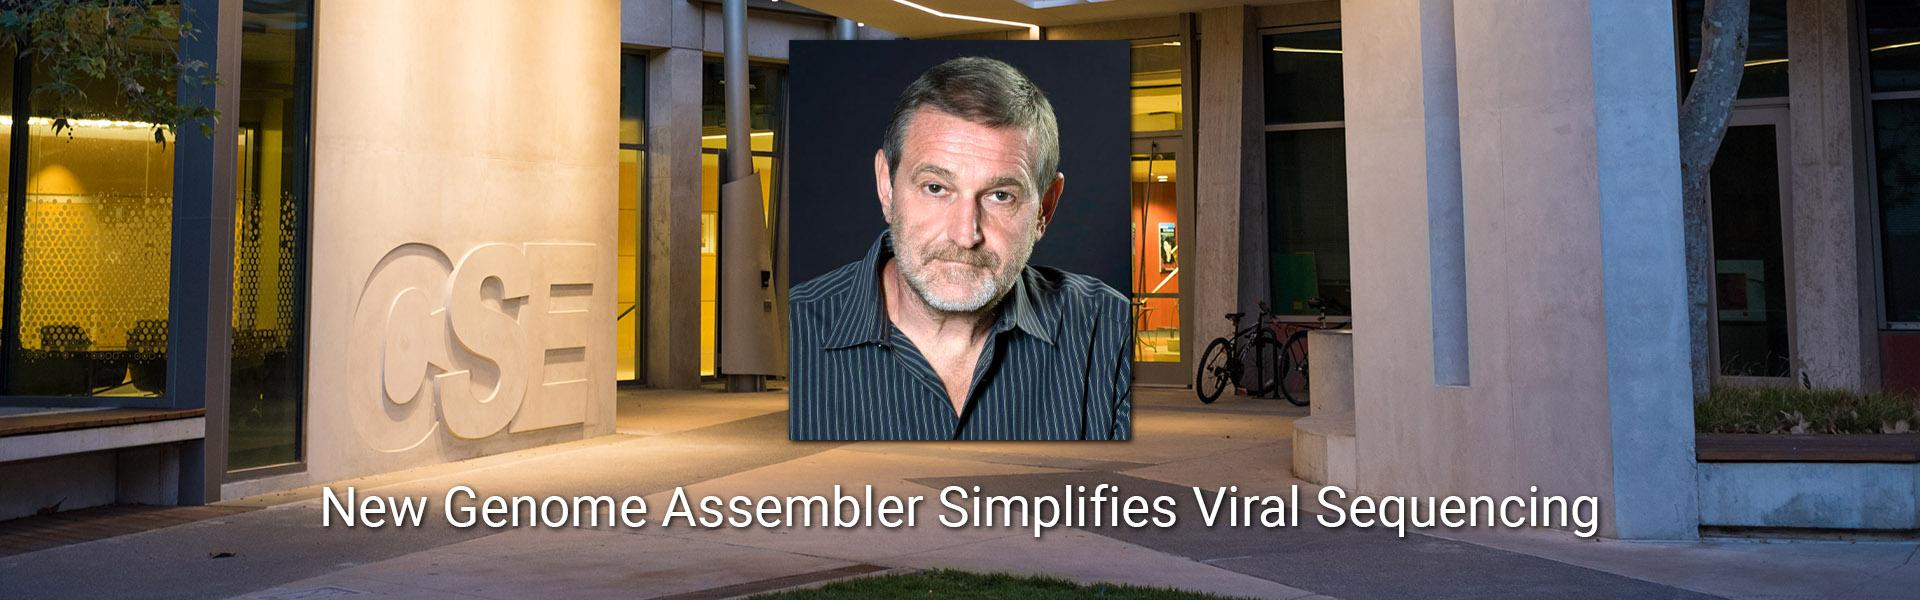 NEW GENOME ASSEMBLER SIMPLIFIES VIRAL SEQUENCING